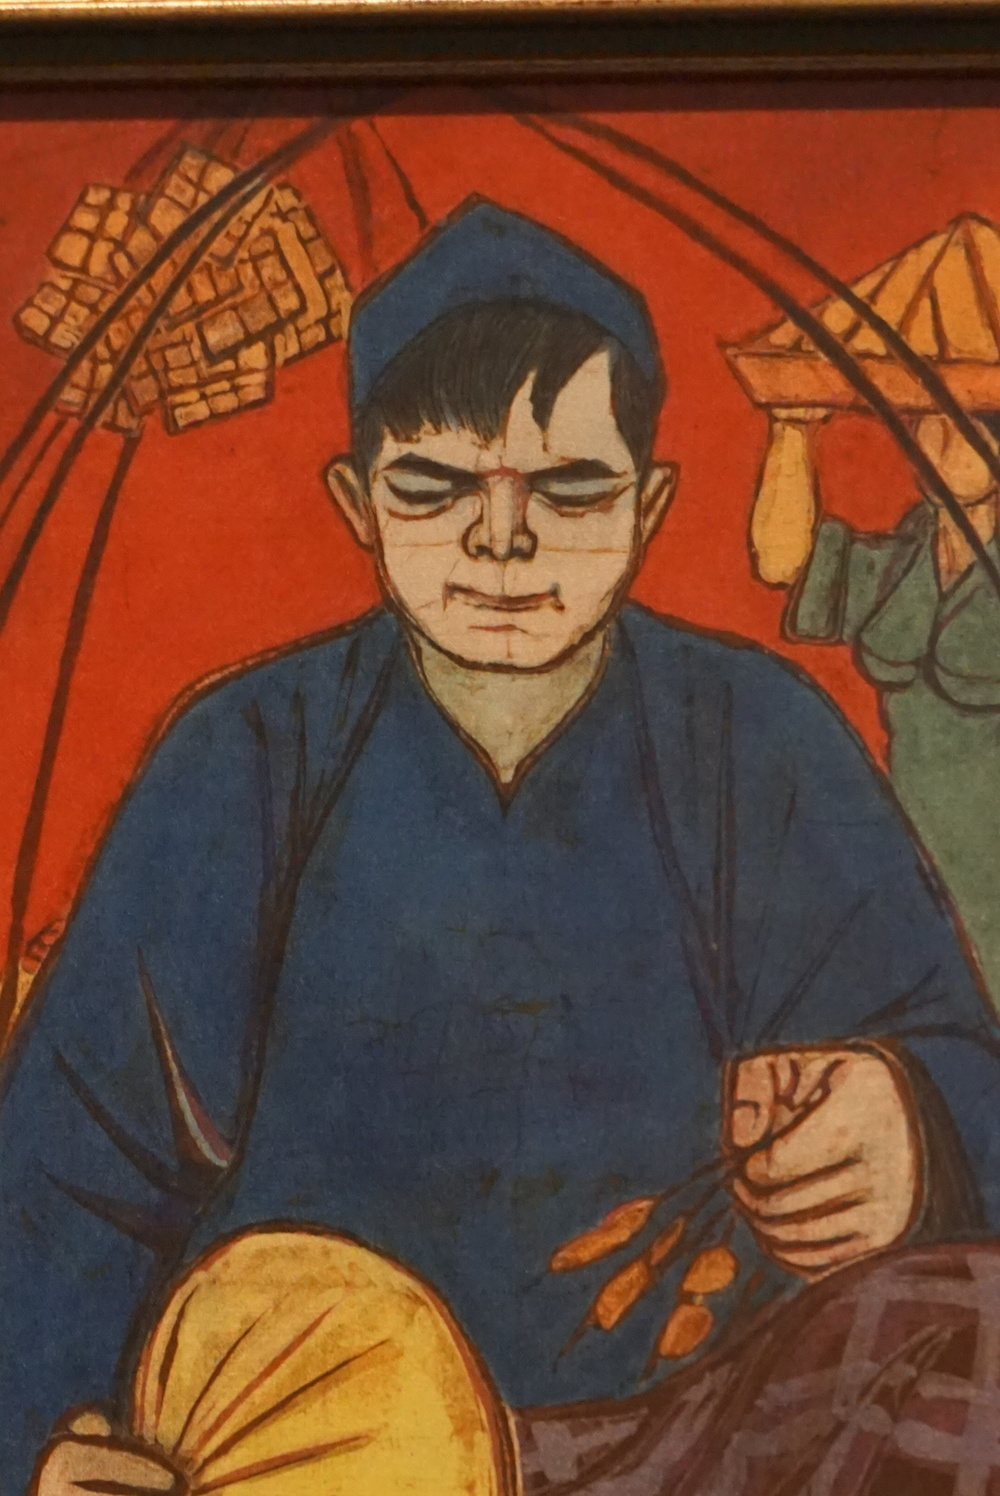 A close up of Chuan Thean Teng's painting of a Satay Seller, 1970, allows you to see the fine nuances in color and shading.